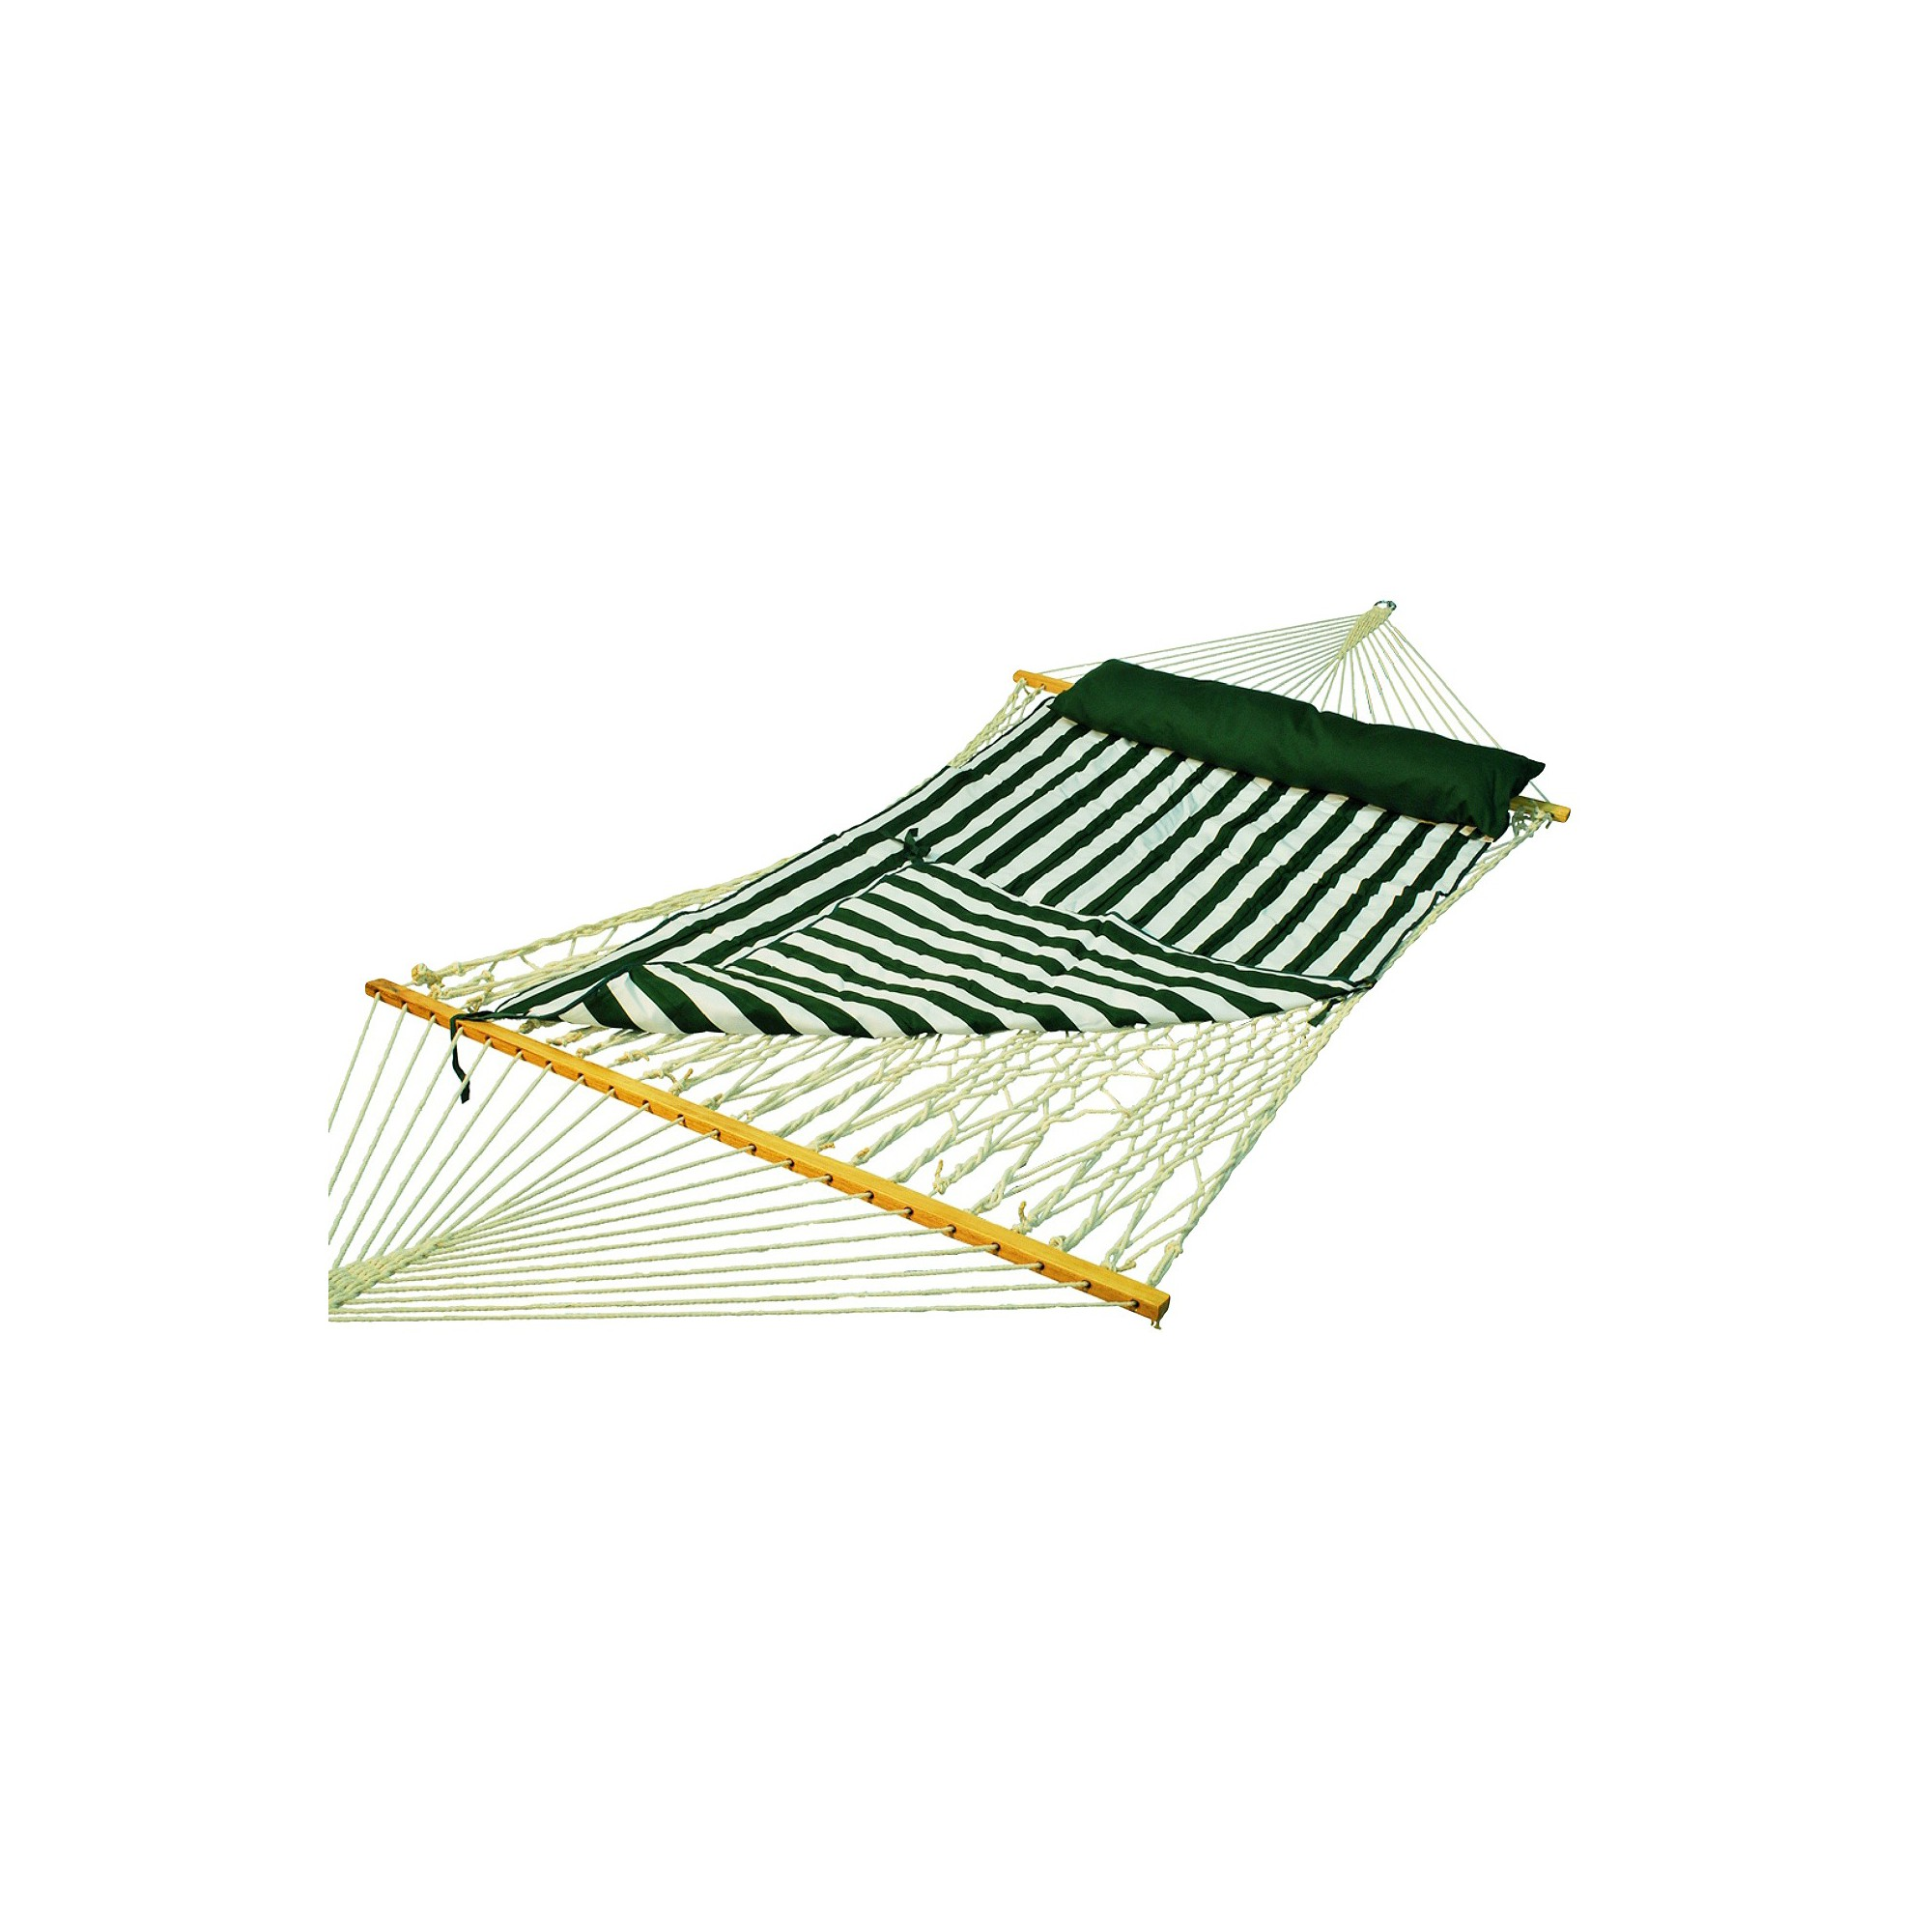 Deluxe Double Rope-Hammock with Pad - Natural